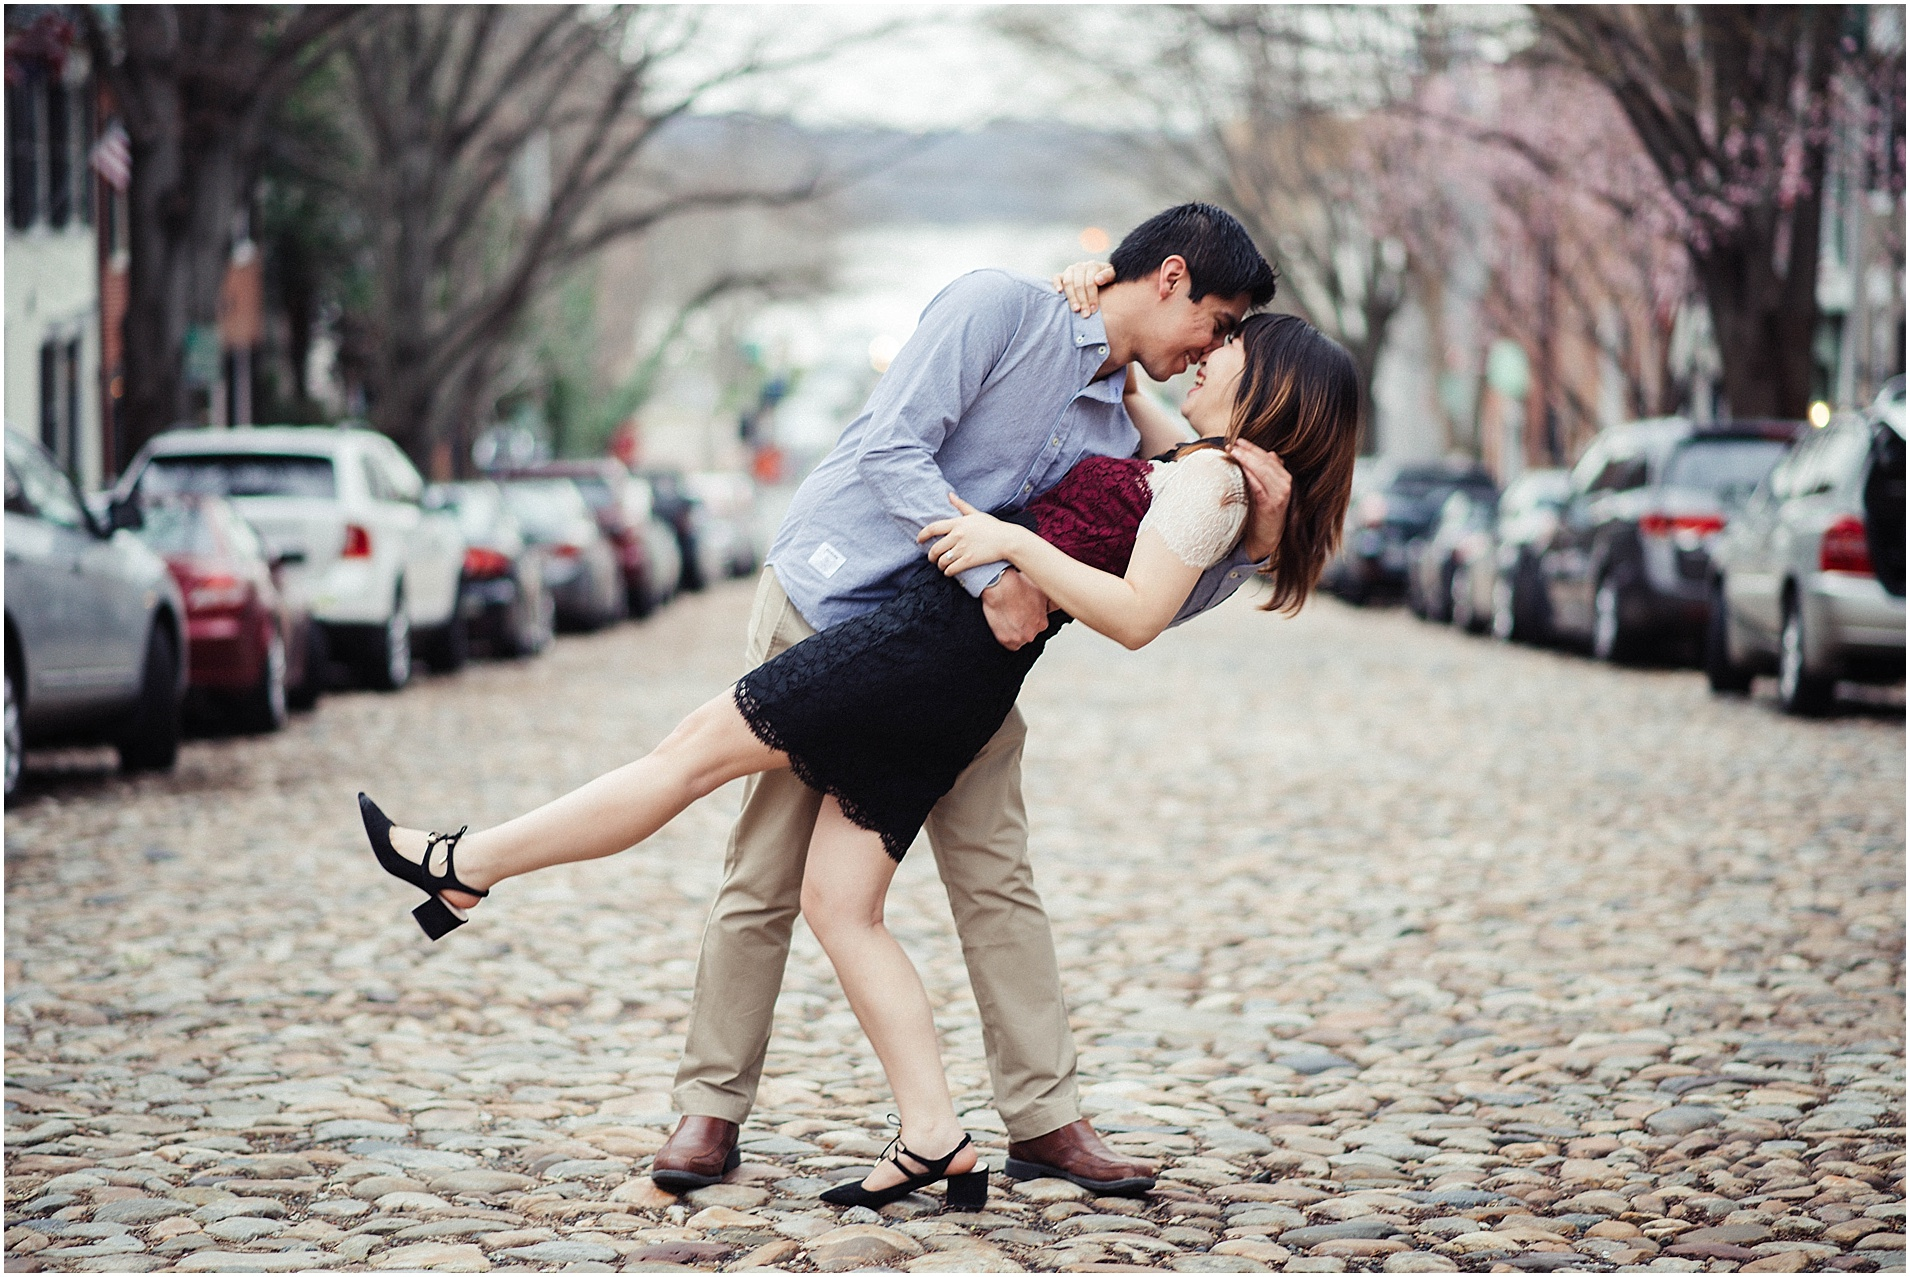 Old Town Alexandria Engagement Session on Cobblestone Street